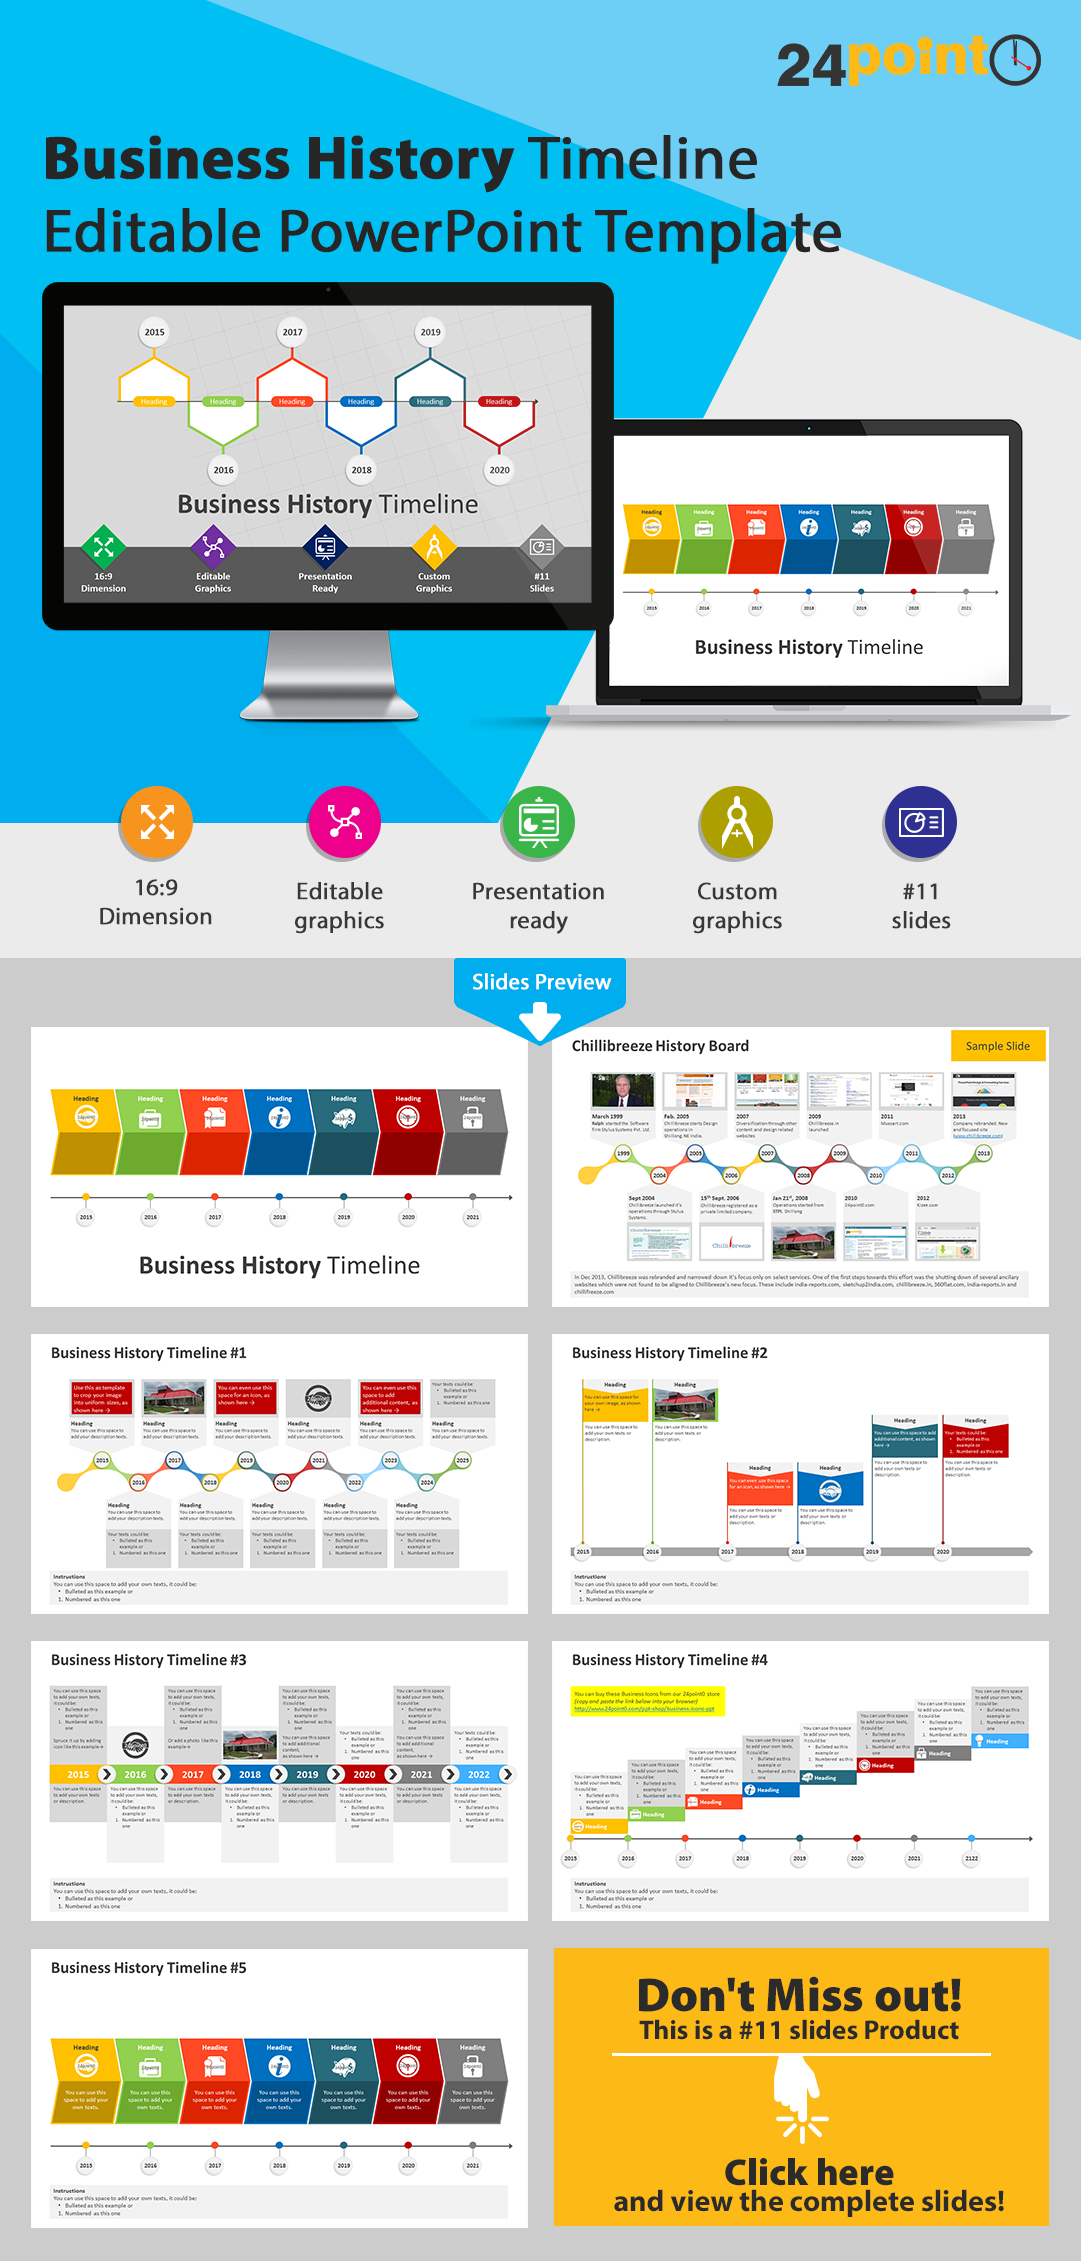 Business history timeline powerpoint template visualize your business history timeline powerpoint template visualize your organizations history by using our business history timeline alramifo Image collections